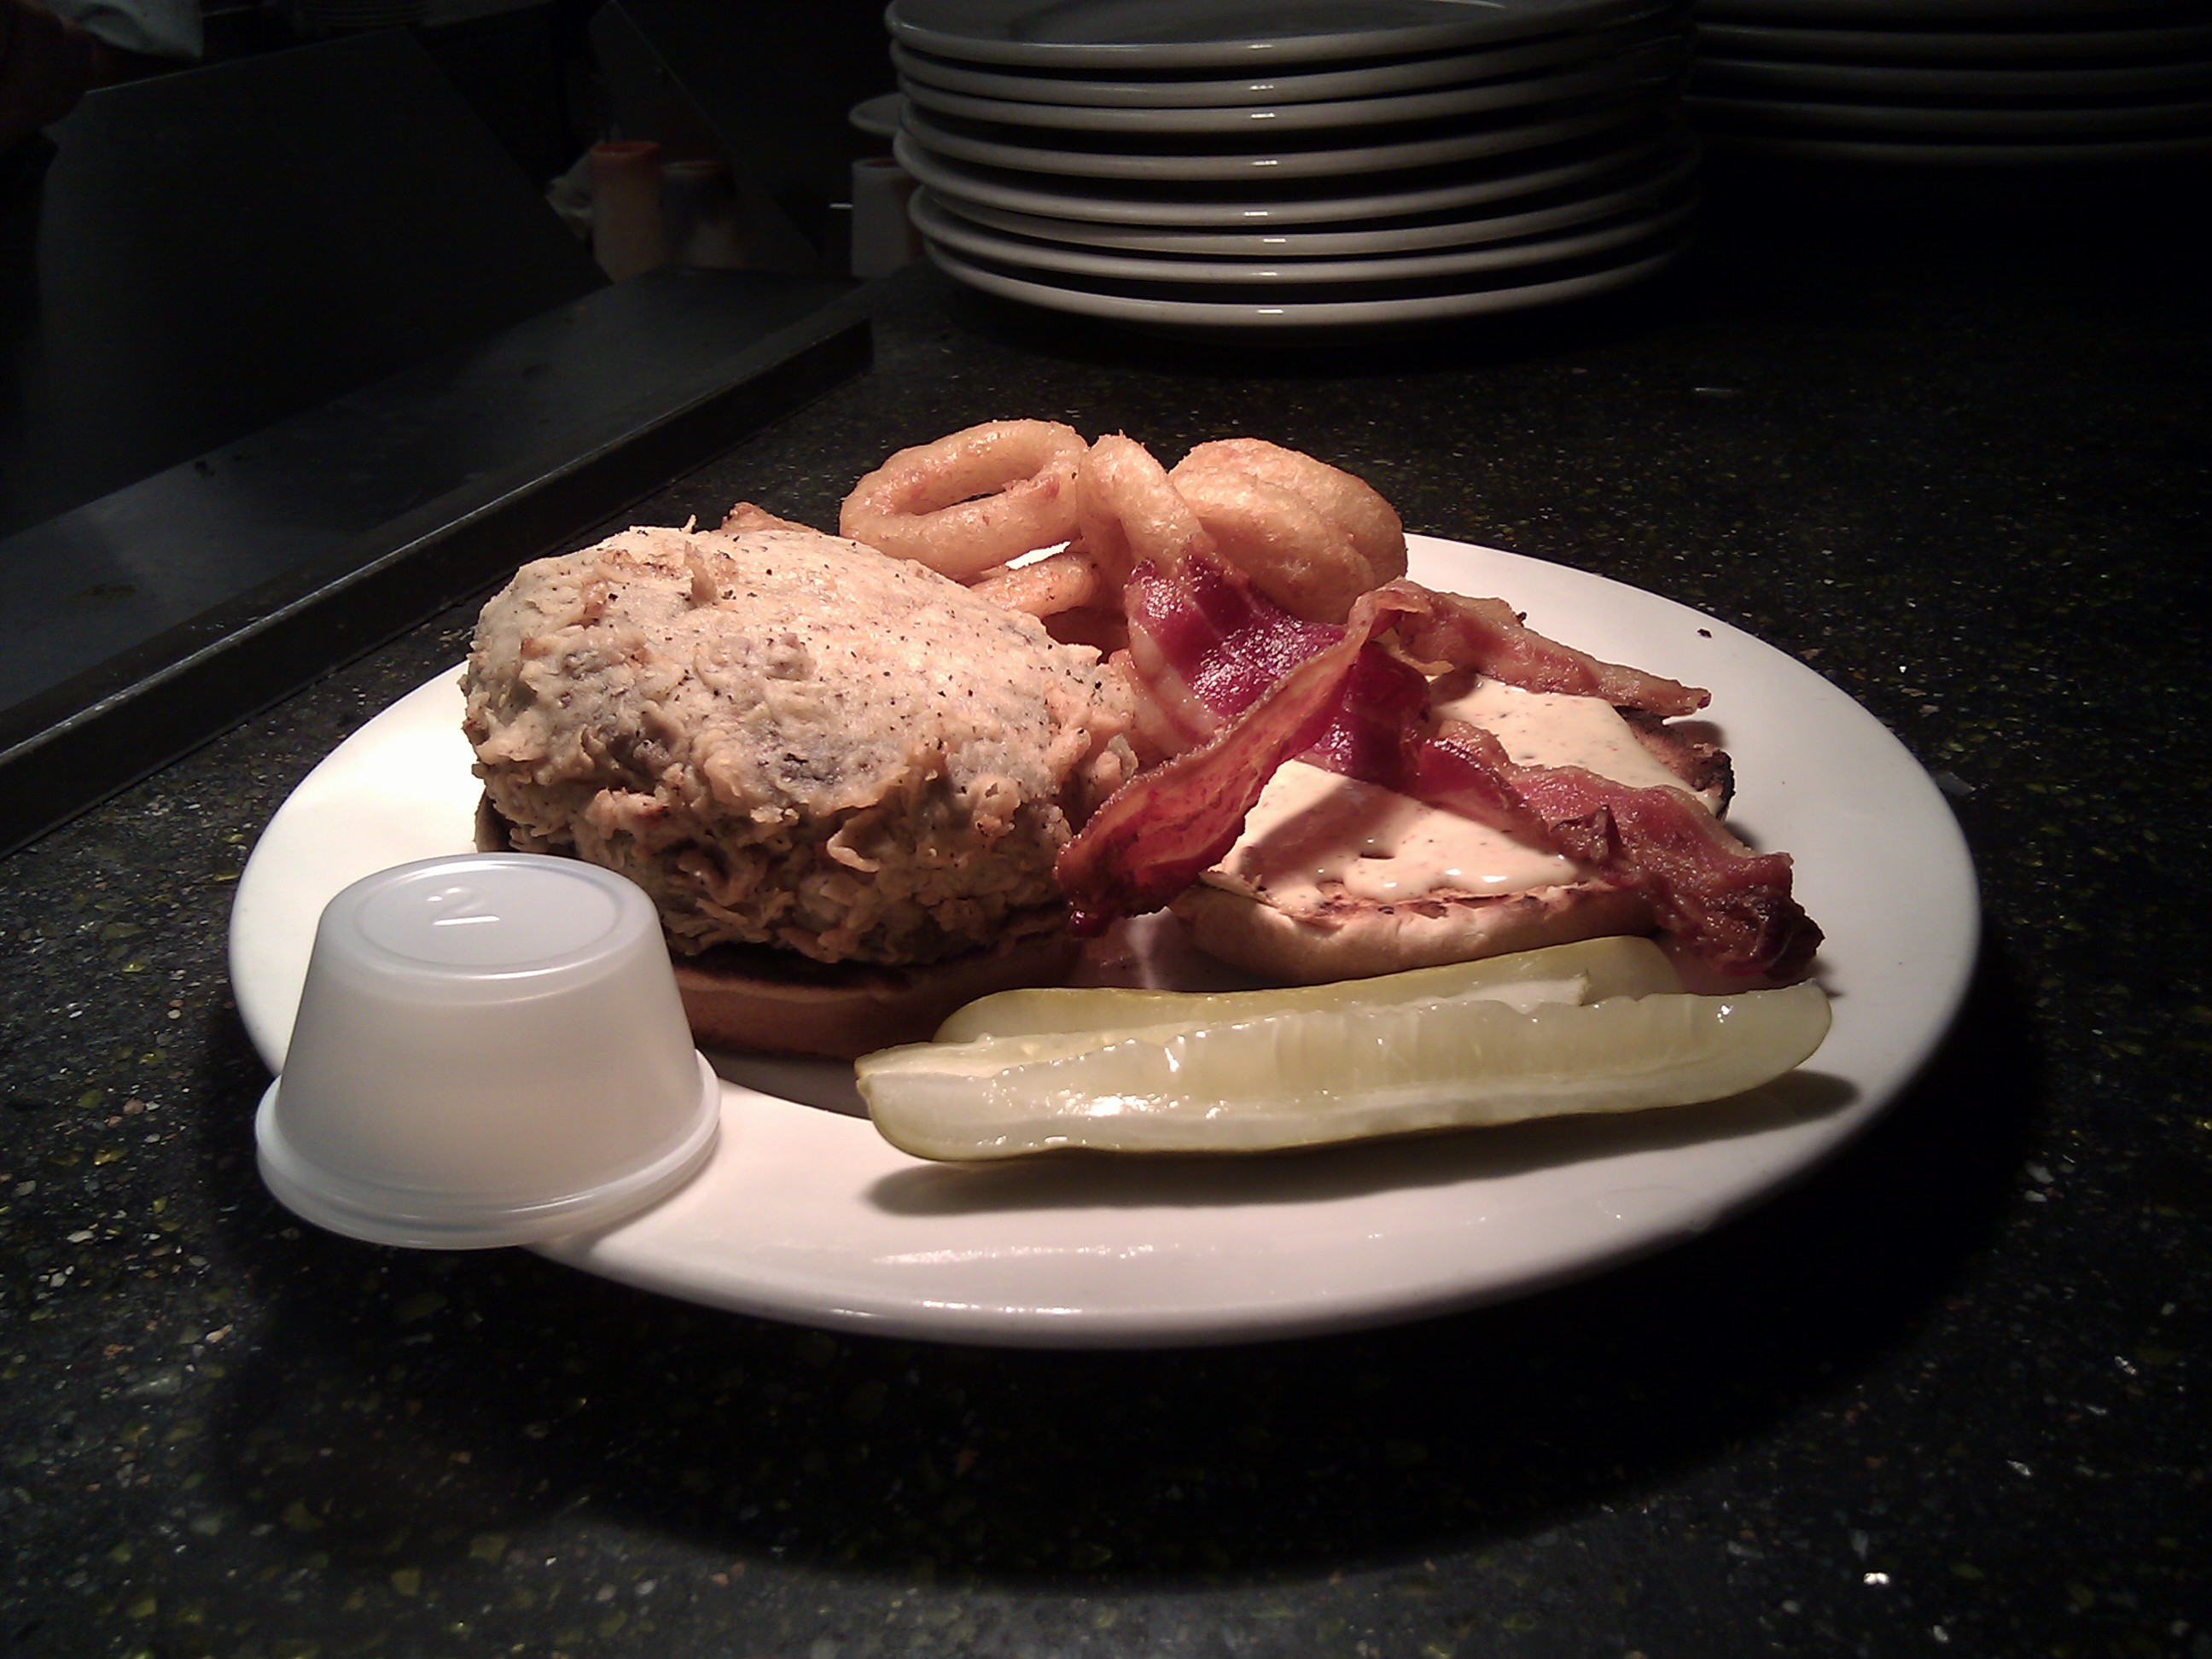 Gatehouse Tavern  :: The Kennyburger - a 10 oz fresh-ground sirloin burger, stuffed with bleu cheese, bacon, and diced habanero... cooked medium rare, then buttermilk battered and deep fried.  Dear Lord, someone get me a fistful of blood thinners.